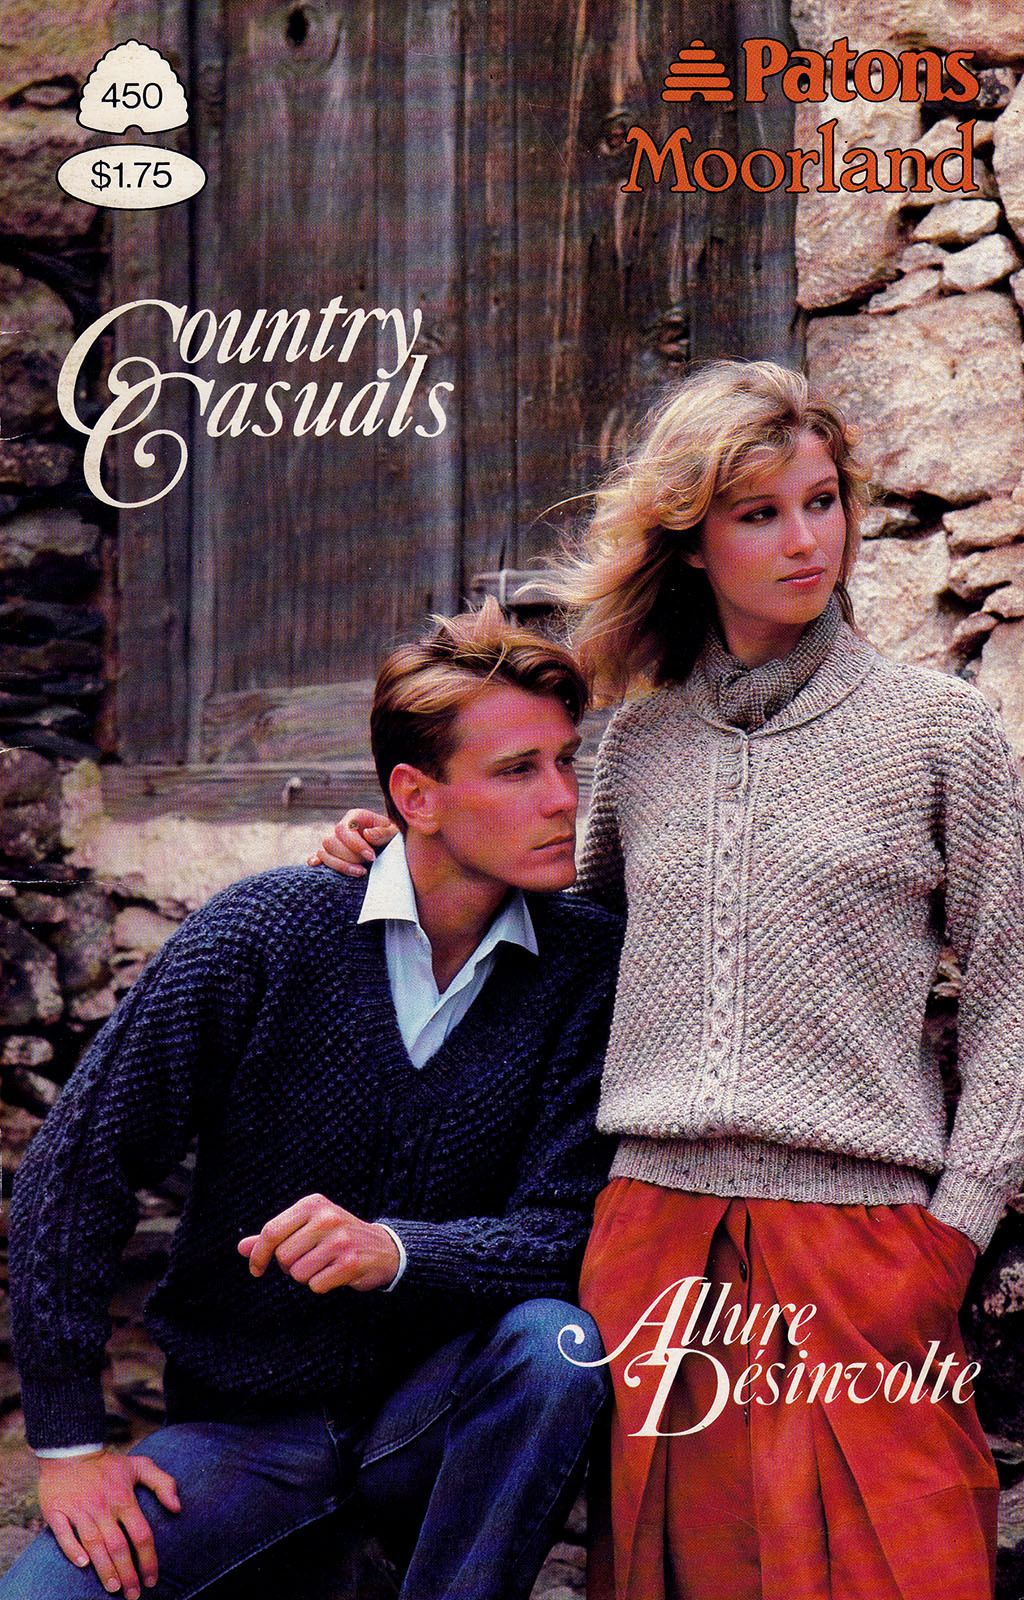 Primary image for COUNTRY CASUALS PATONS 450 CLASSIC CLASSY DESIGNED KNITS FAIR ISLES CABLES